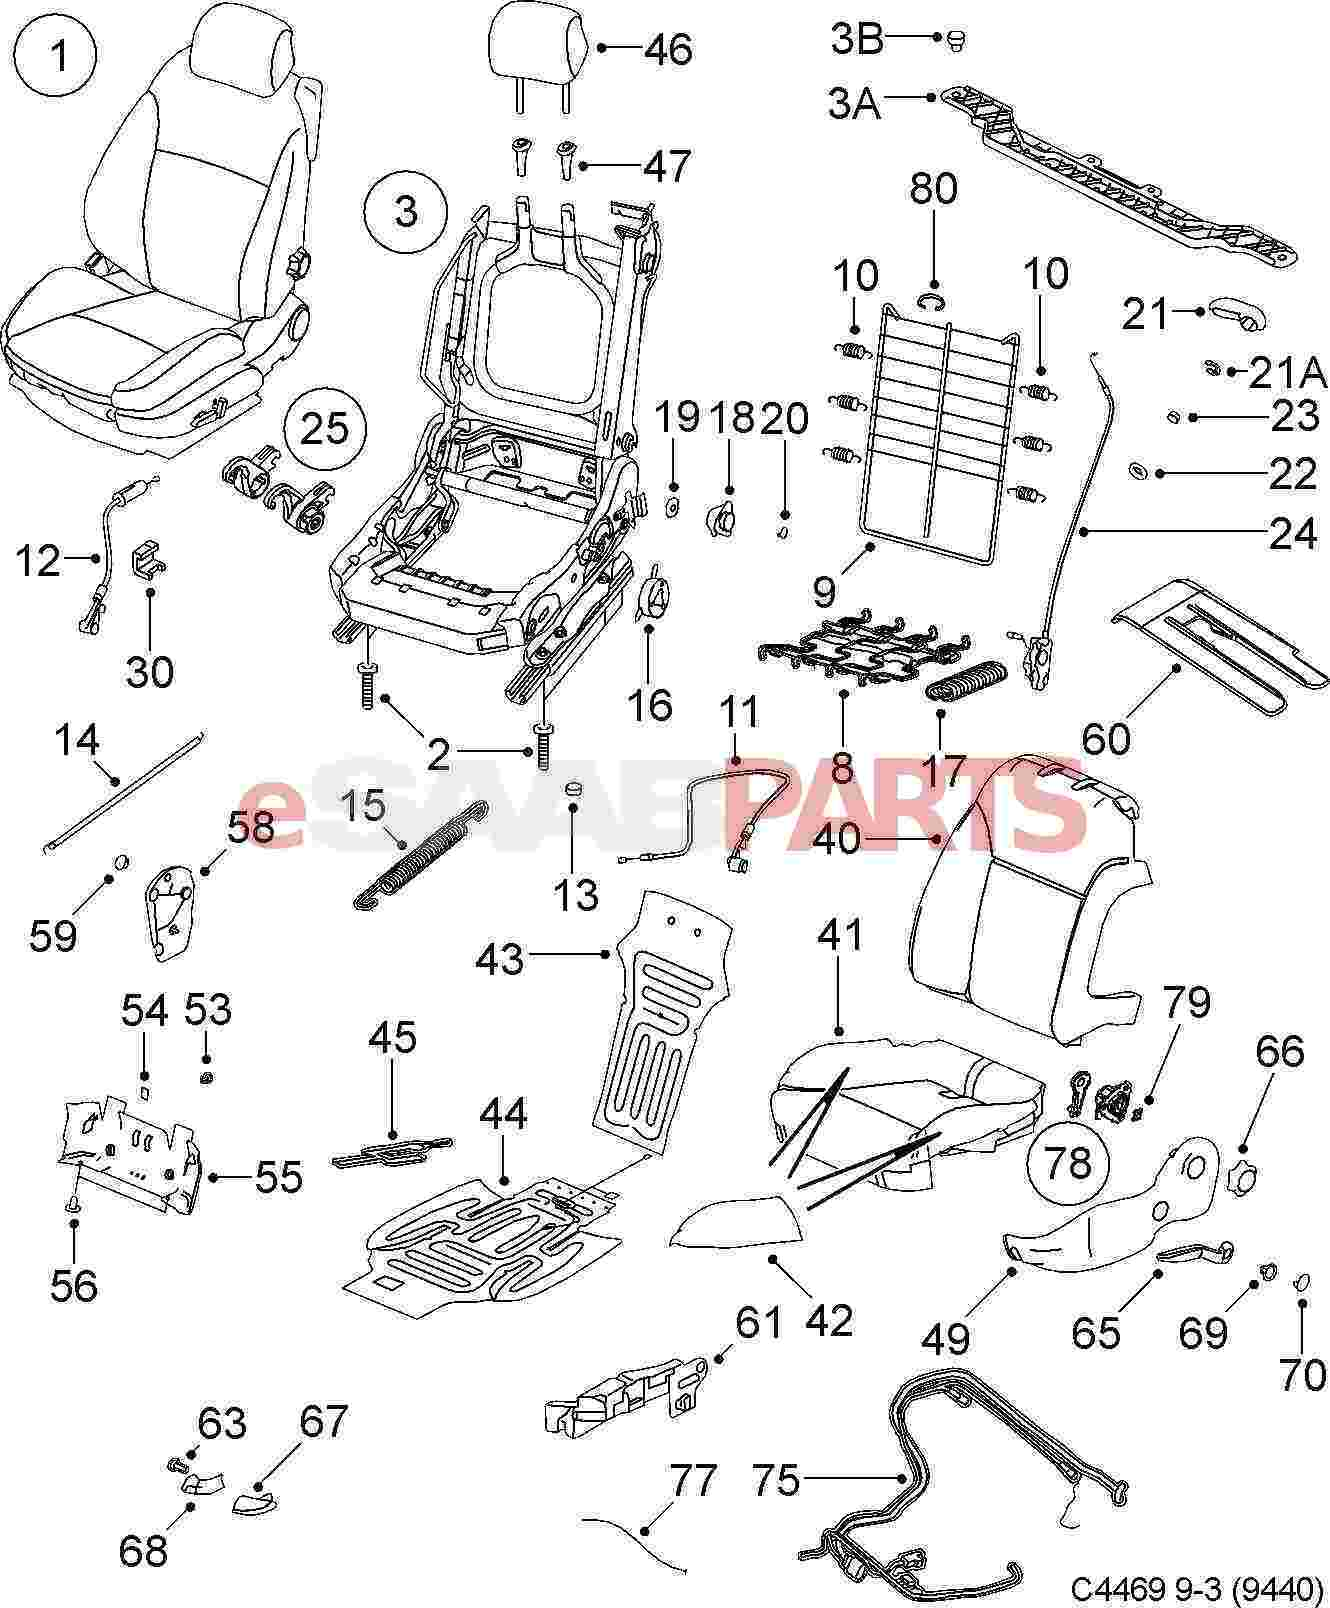 airbag wiring diagram 1989 lincoln continental